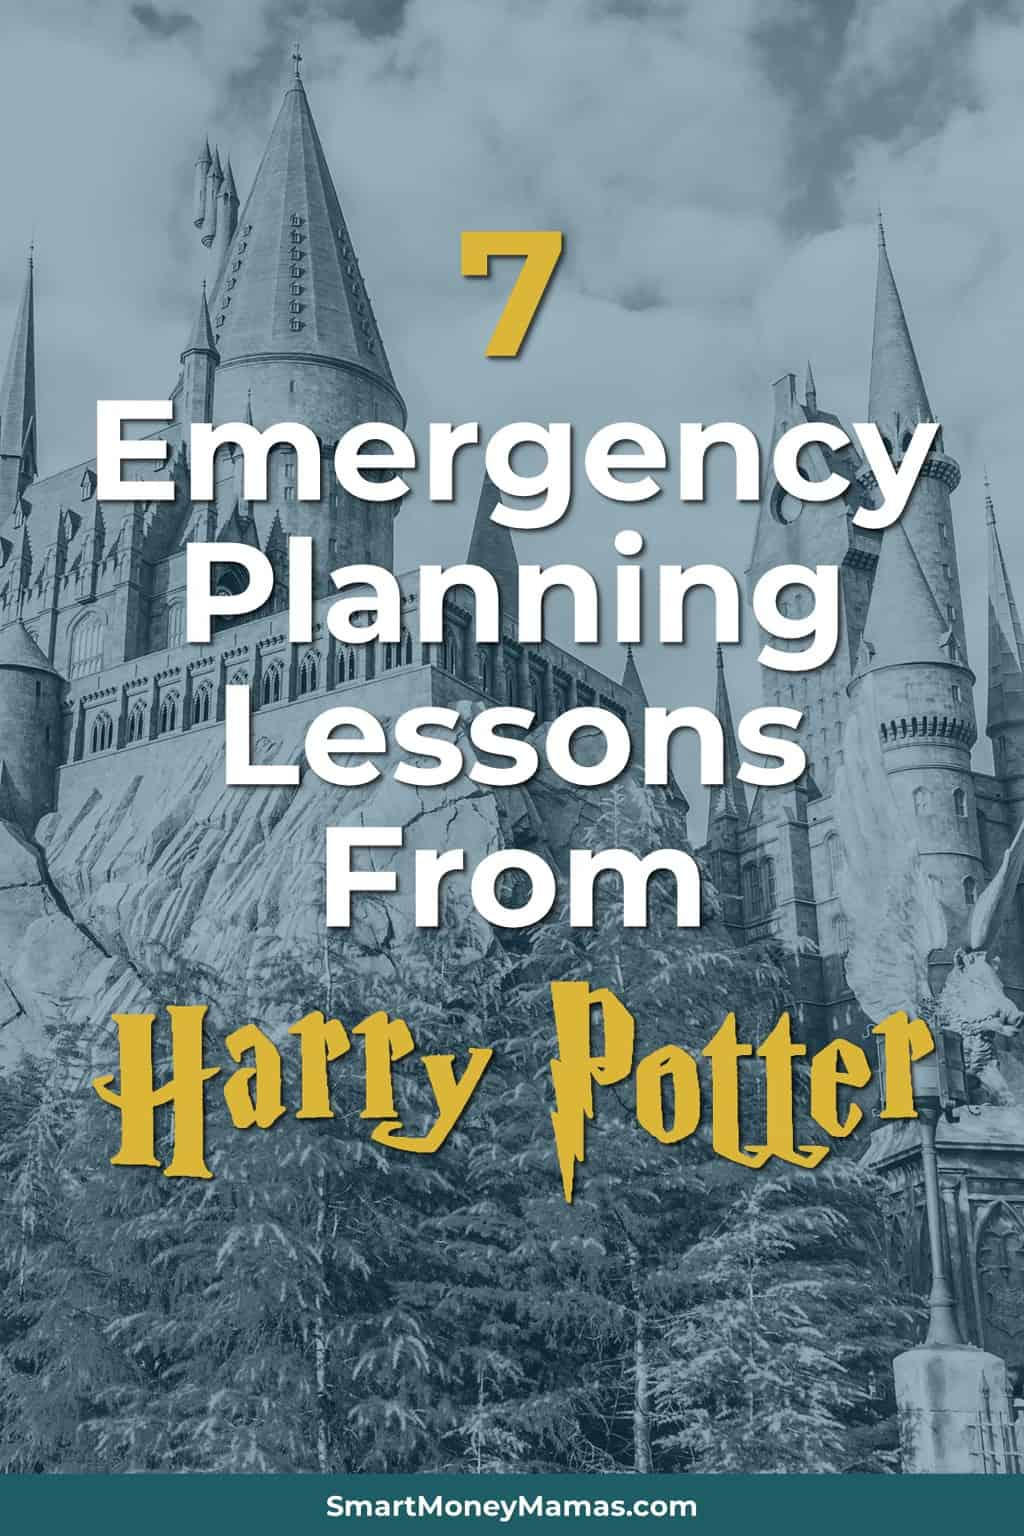 Oh my goodness, I love this! So many good reminders for us to get our will and insurance plans settled this year. #estateplanning #harrypotter #potterhead #emergencybinder